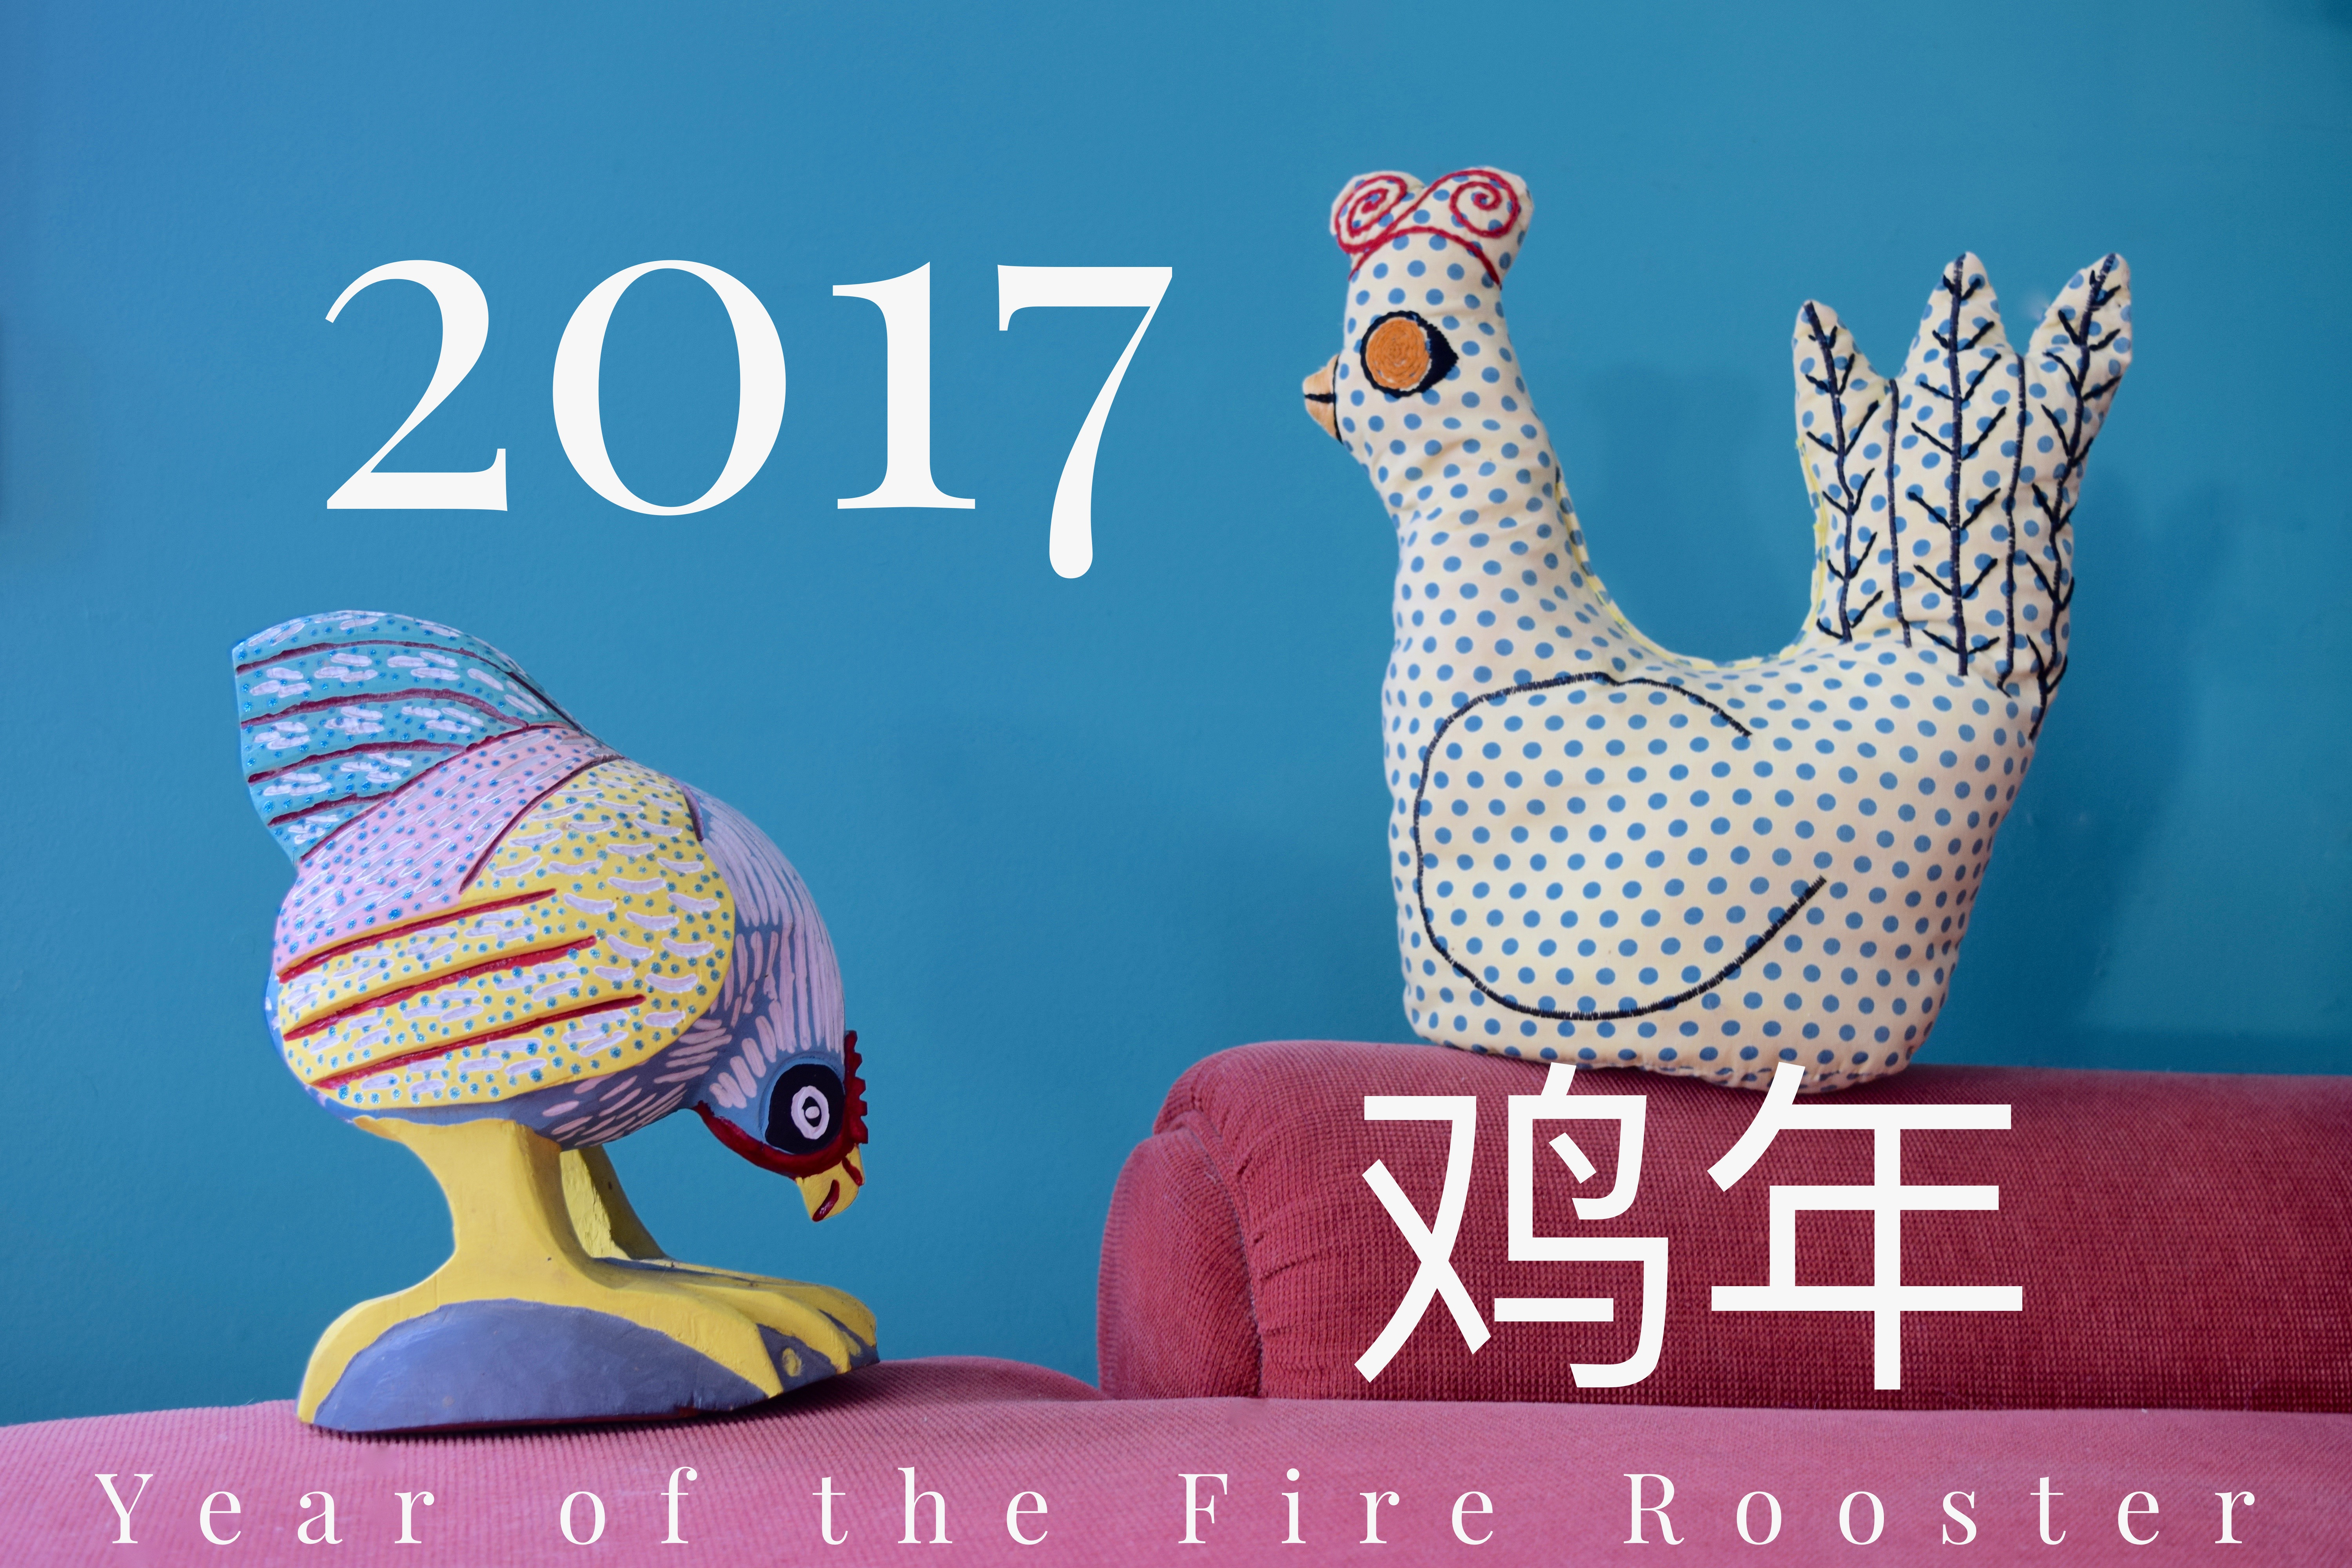 Fire Rooster Poster